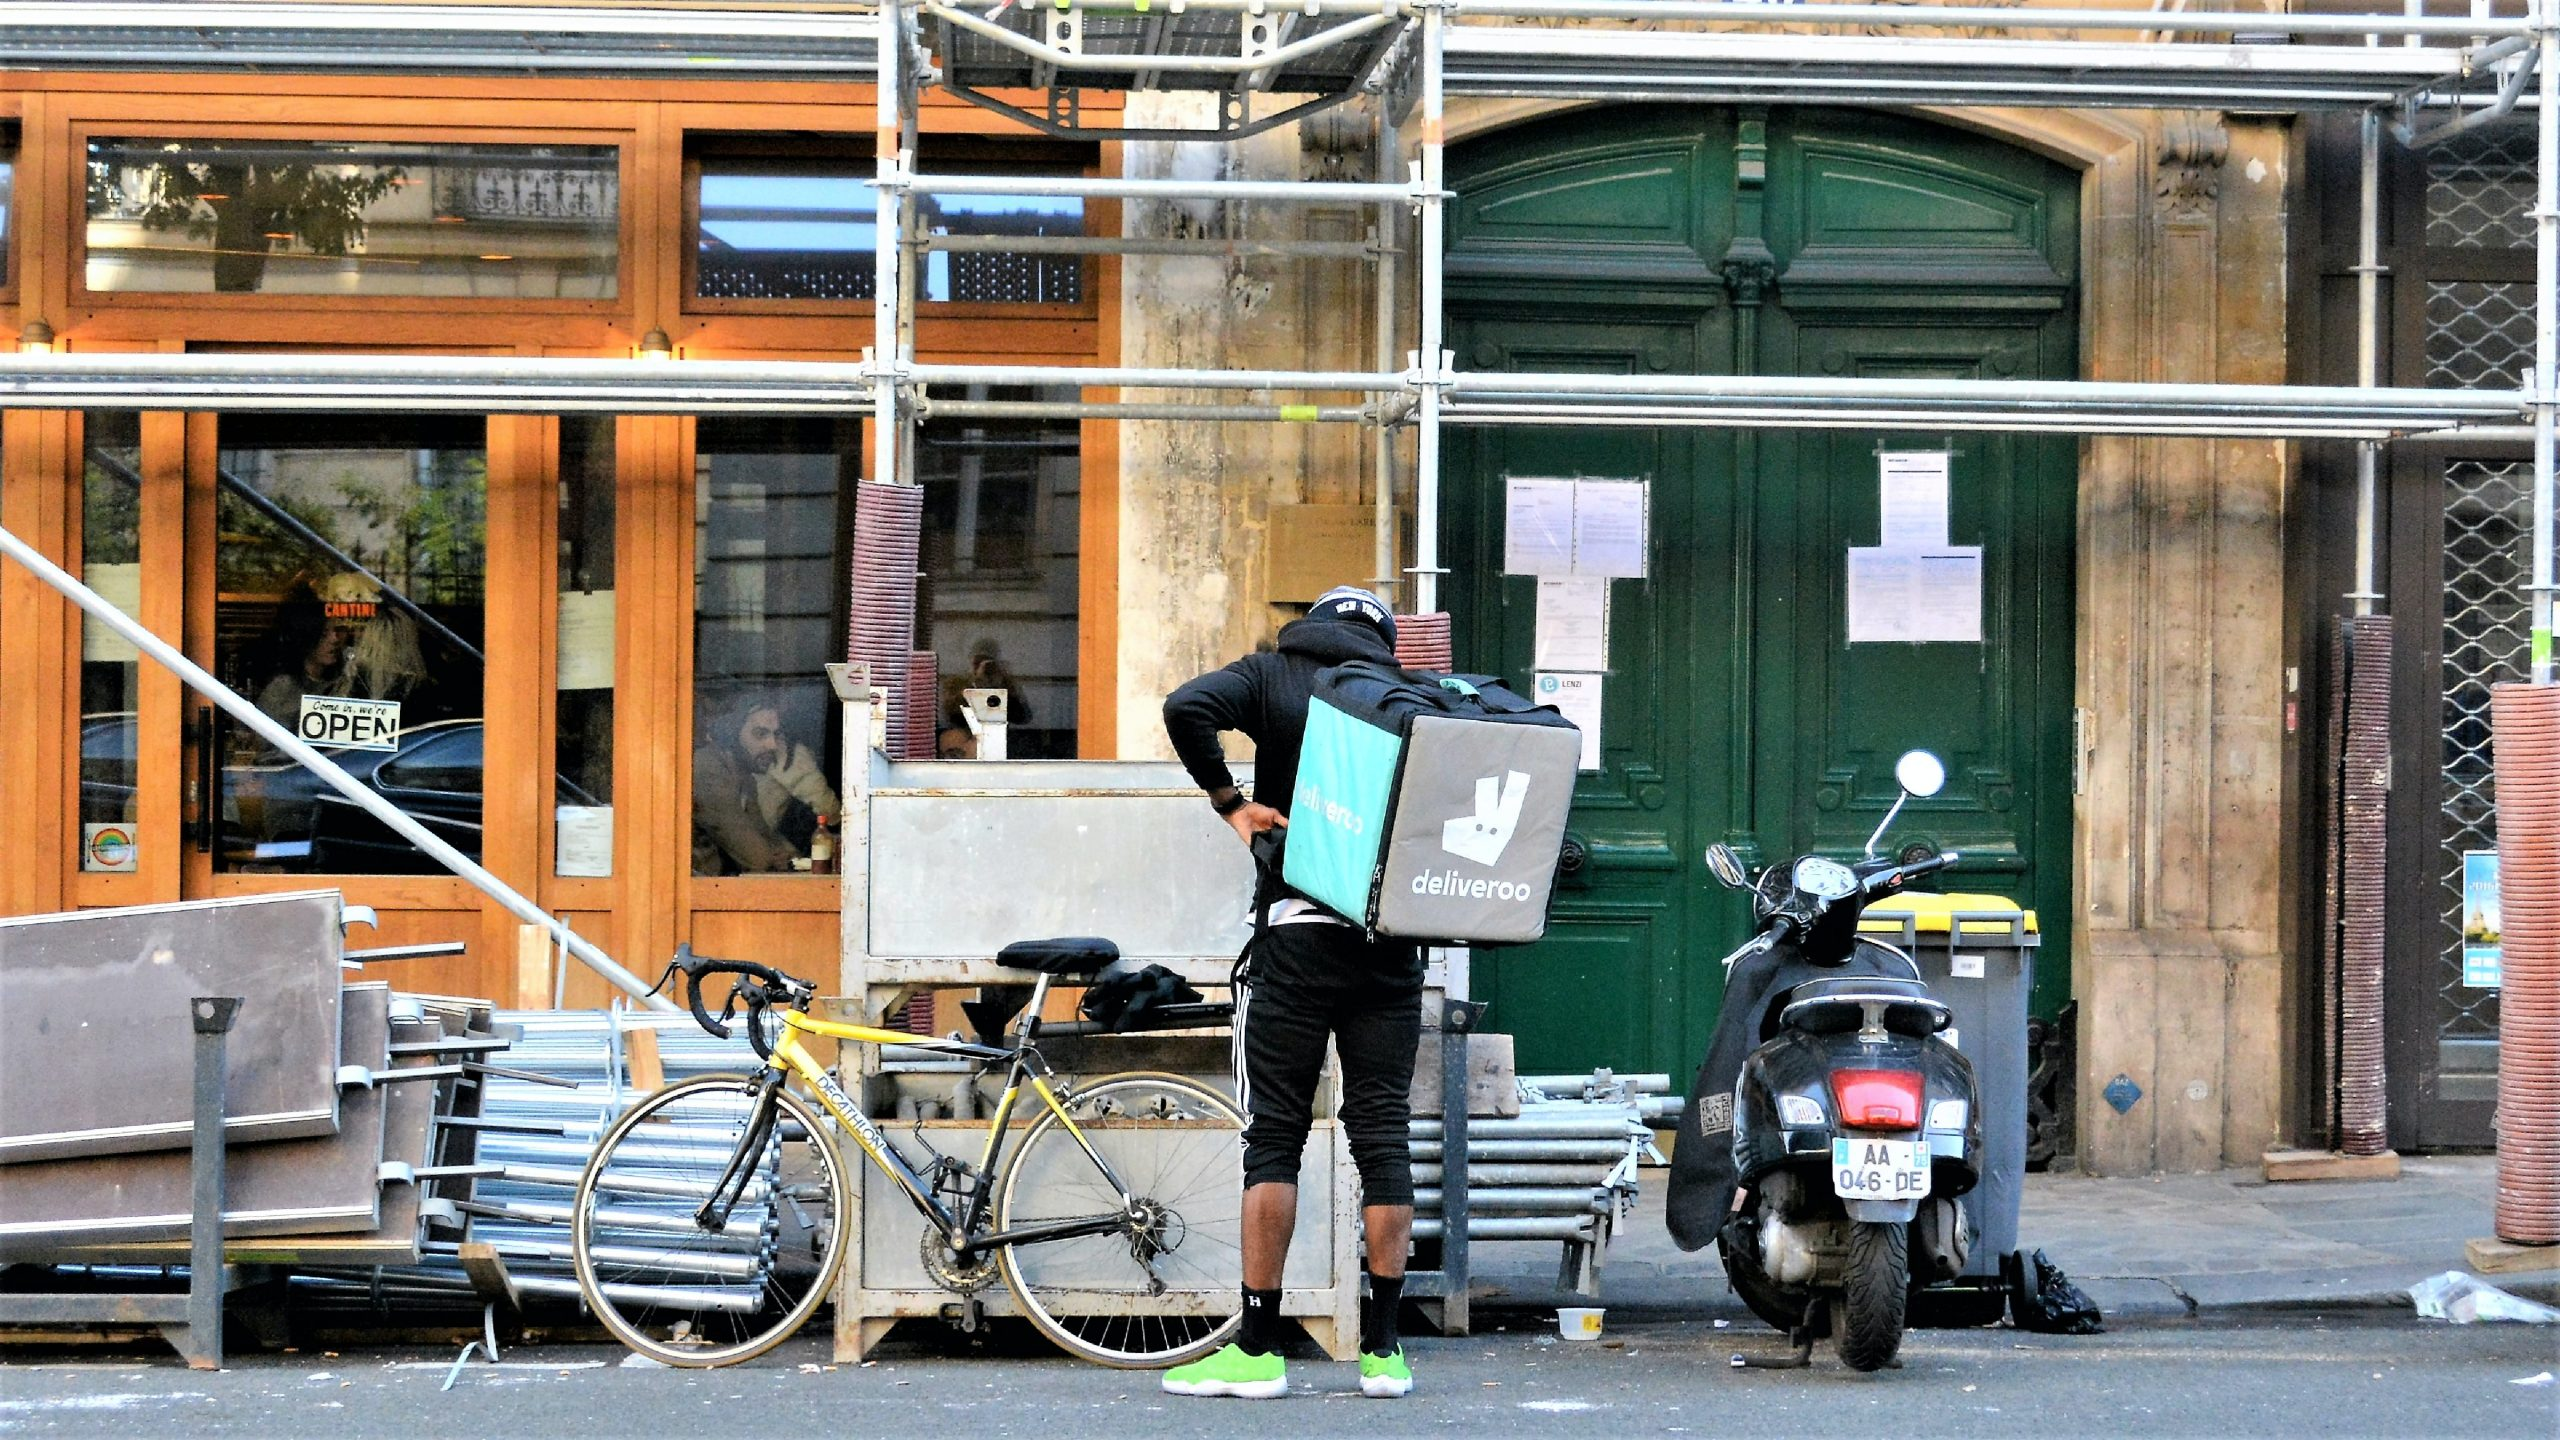 A deliveroo driver puts their bag back on their back. They stand next to their bike.